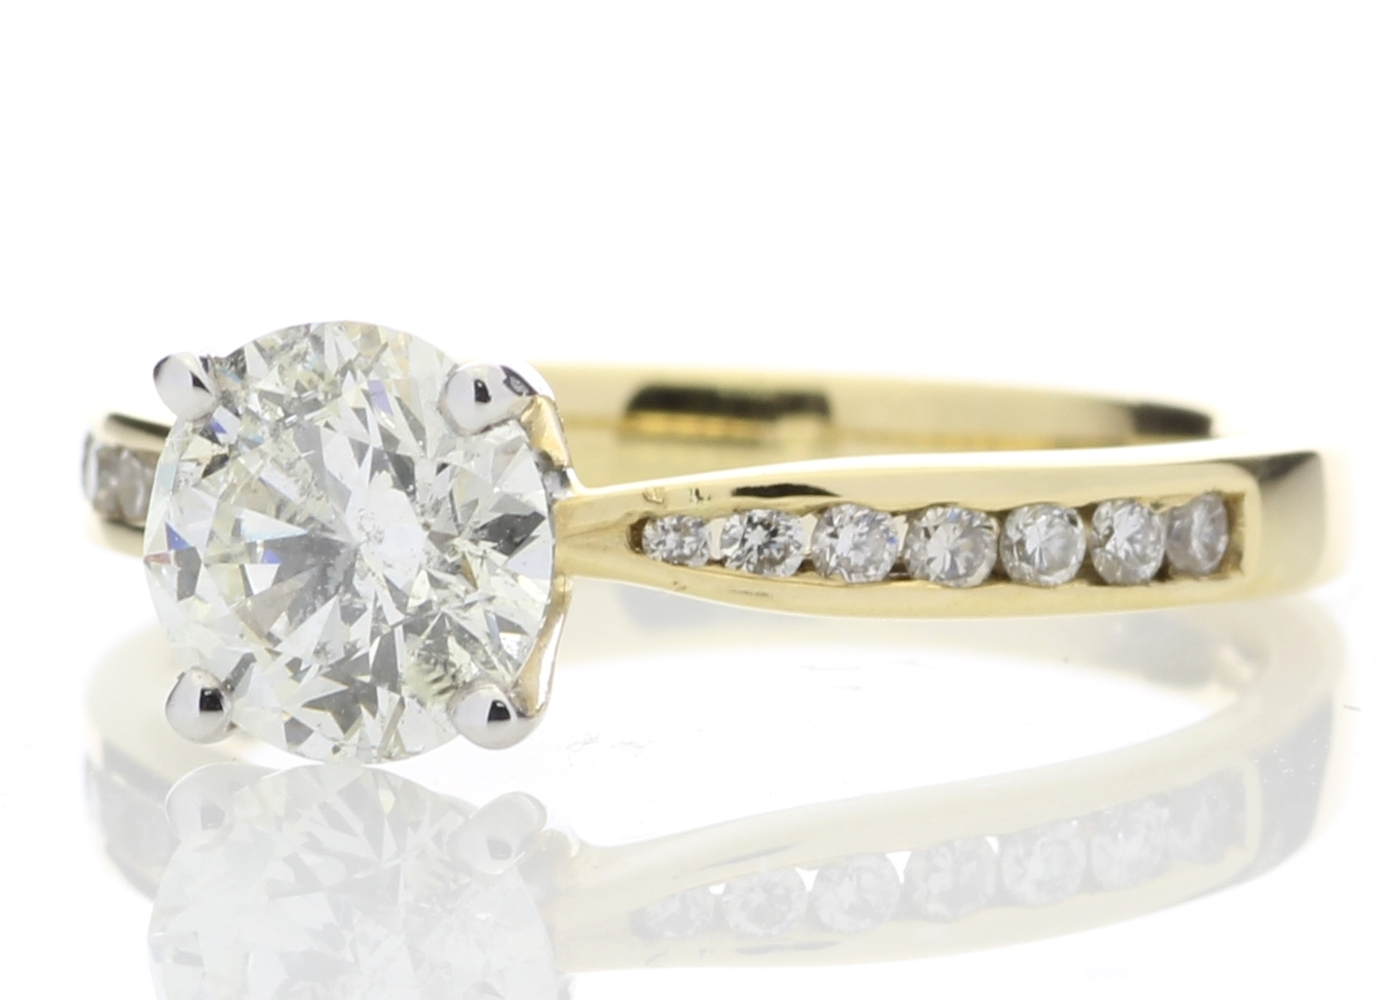 18ct Yellow Gold Diamond Ring With Stone Set Shoulders 1.28 Carats - Image 2 of 5